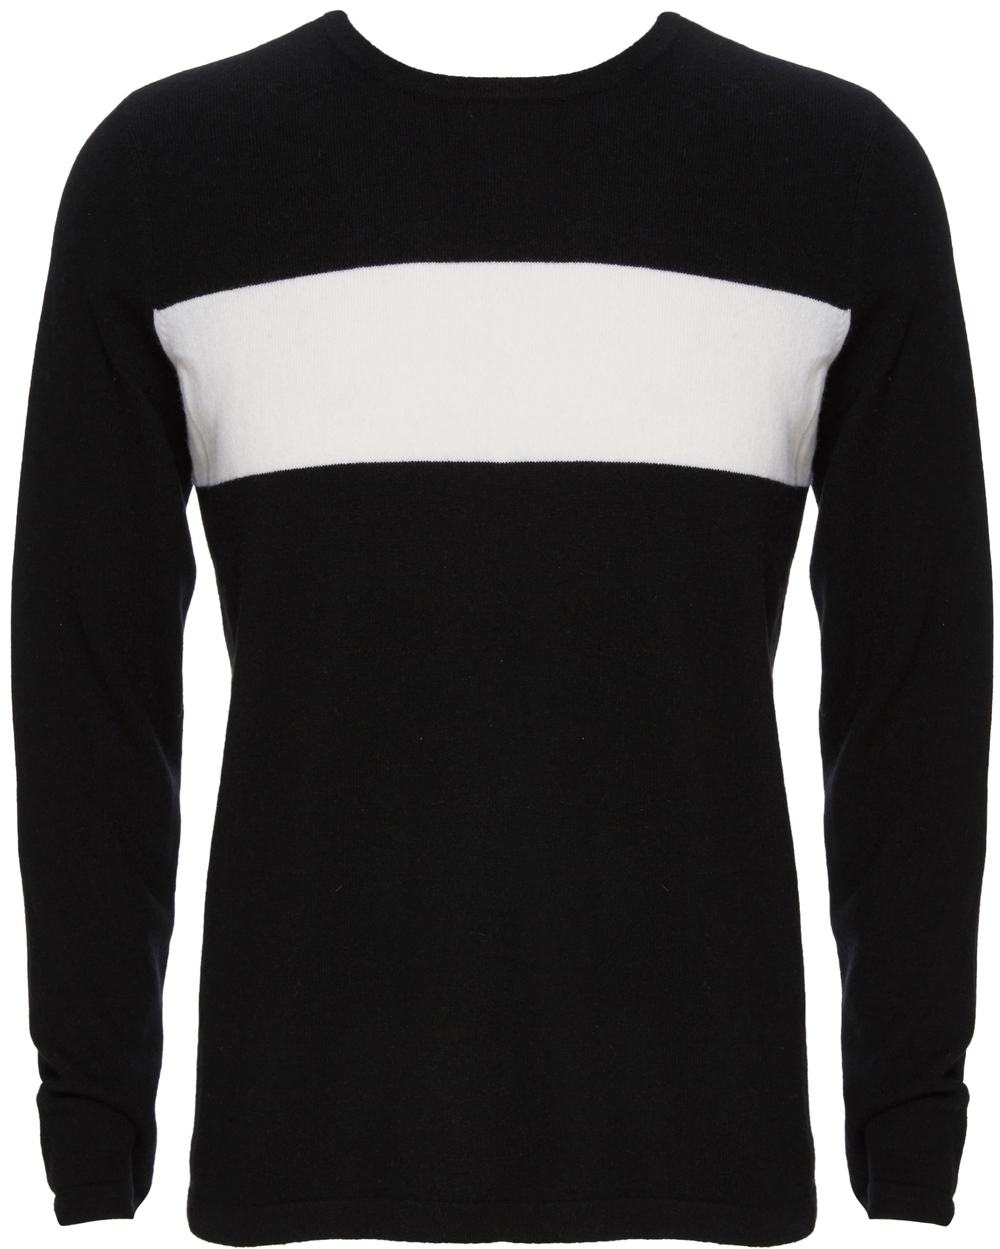 VINCE Wool Cashmere Block Stripe Crew Neck Sweater, $295